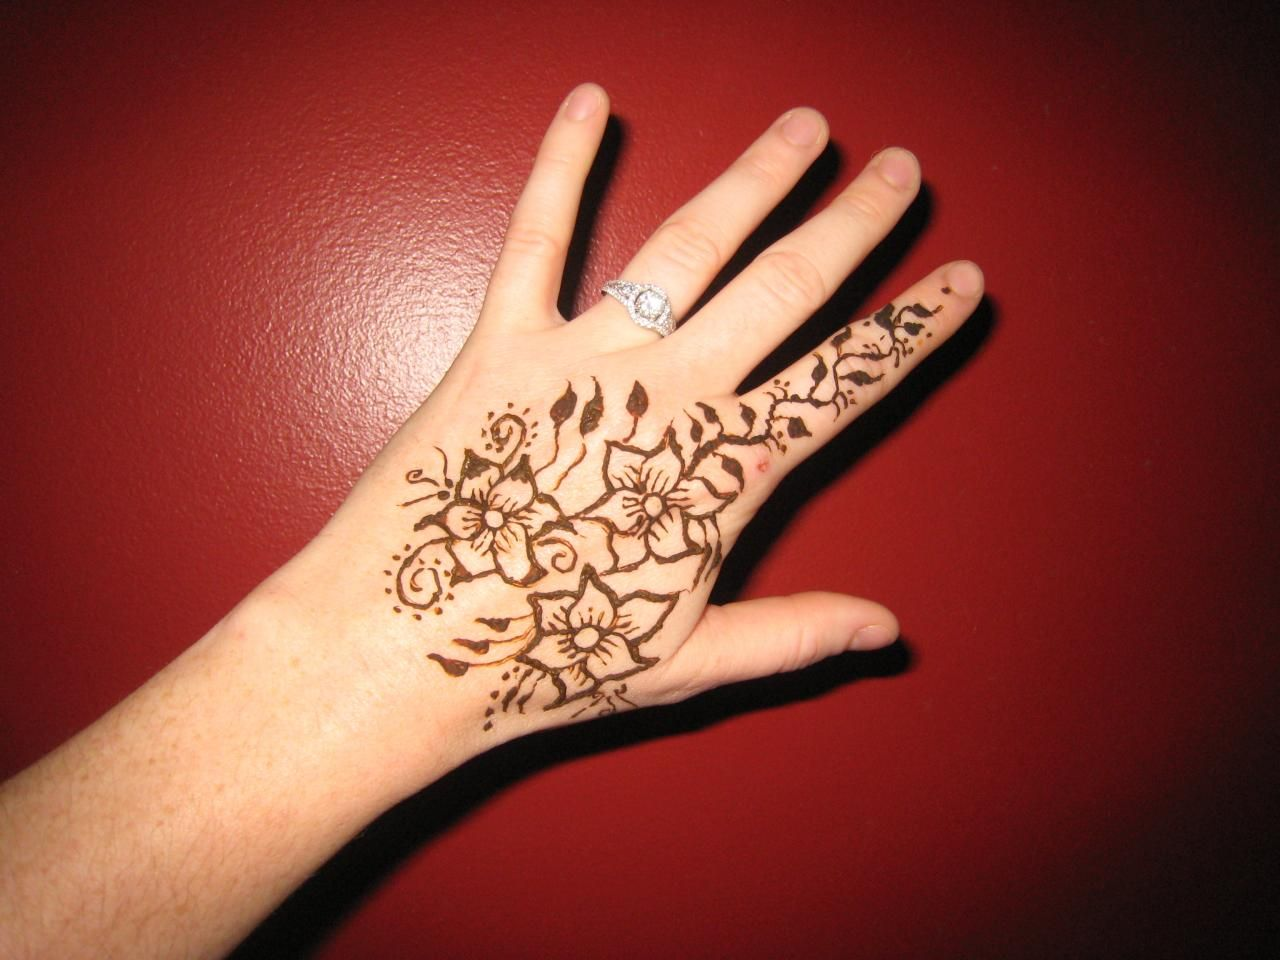 Hand tattoos tattoo ideas hands body art tattoo s floral tattoo - Diy Henna Tattoos Kids Events Activities Things To Do For Families Find This Pin And More On Cool Henna Tattoo